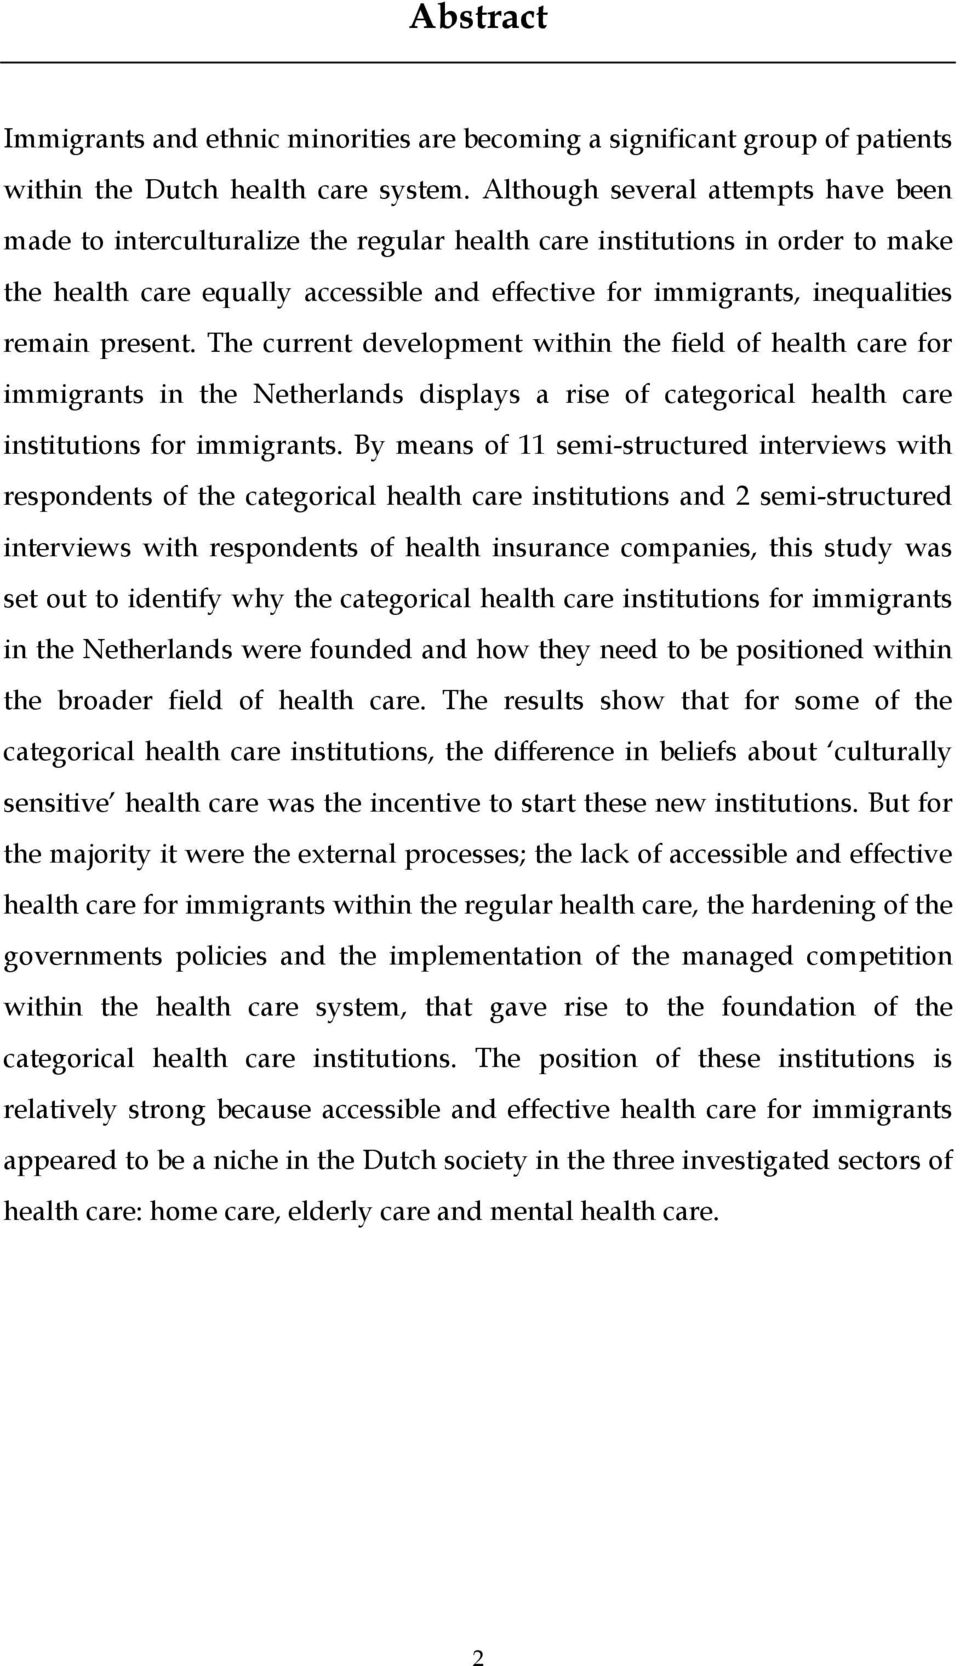 present. The current development within the field of health care for immigrants in the Netherlands displays a rise of categorical health care institutions for immigrants.